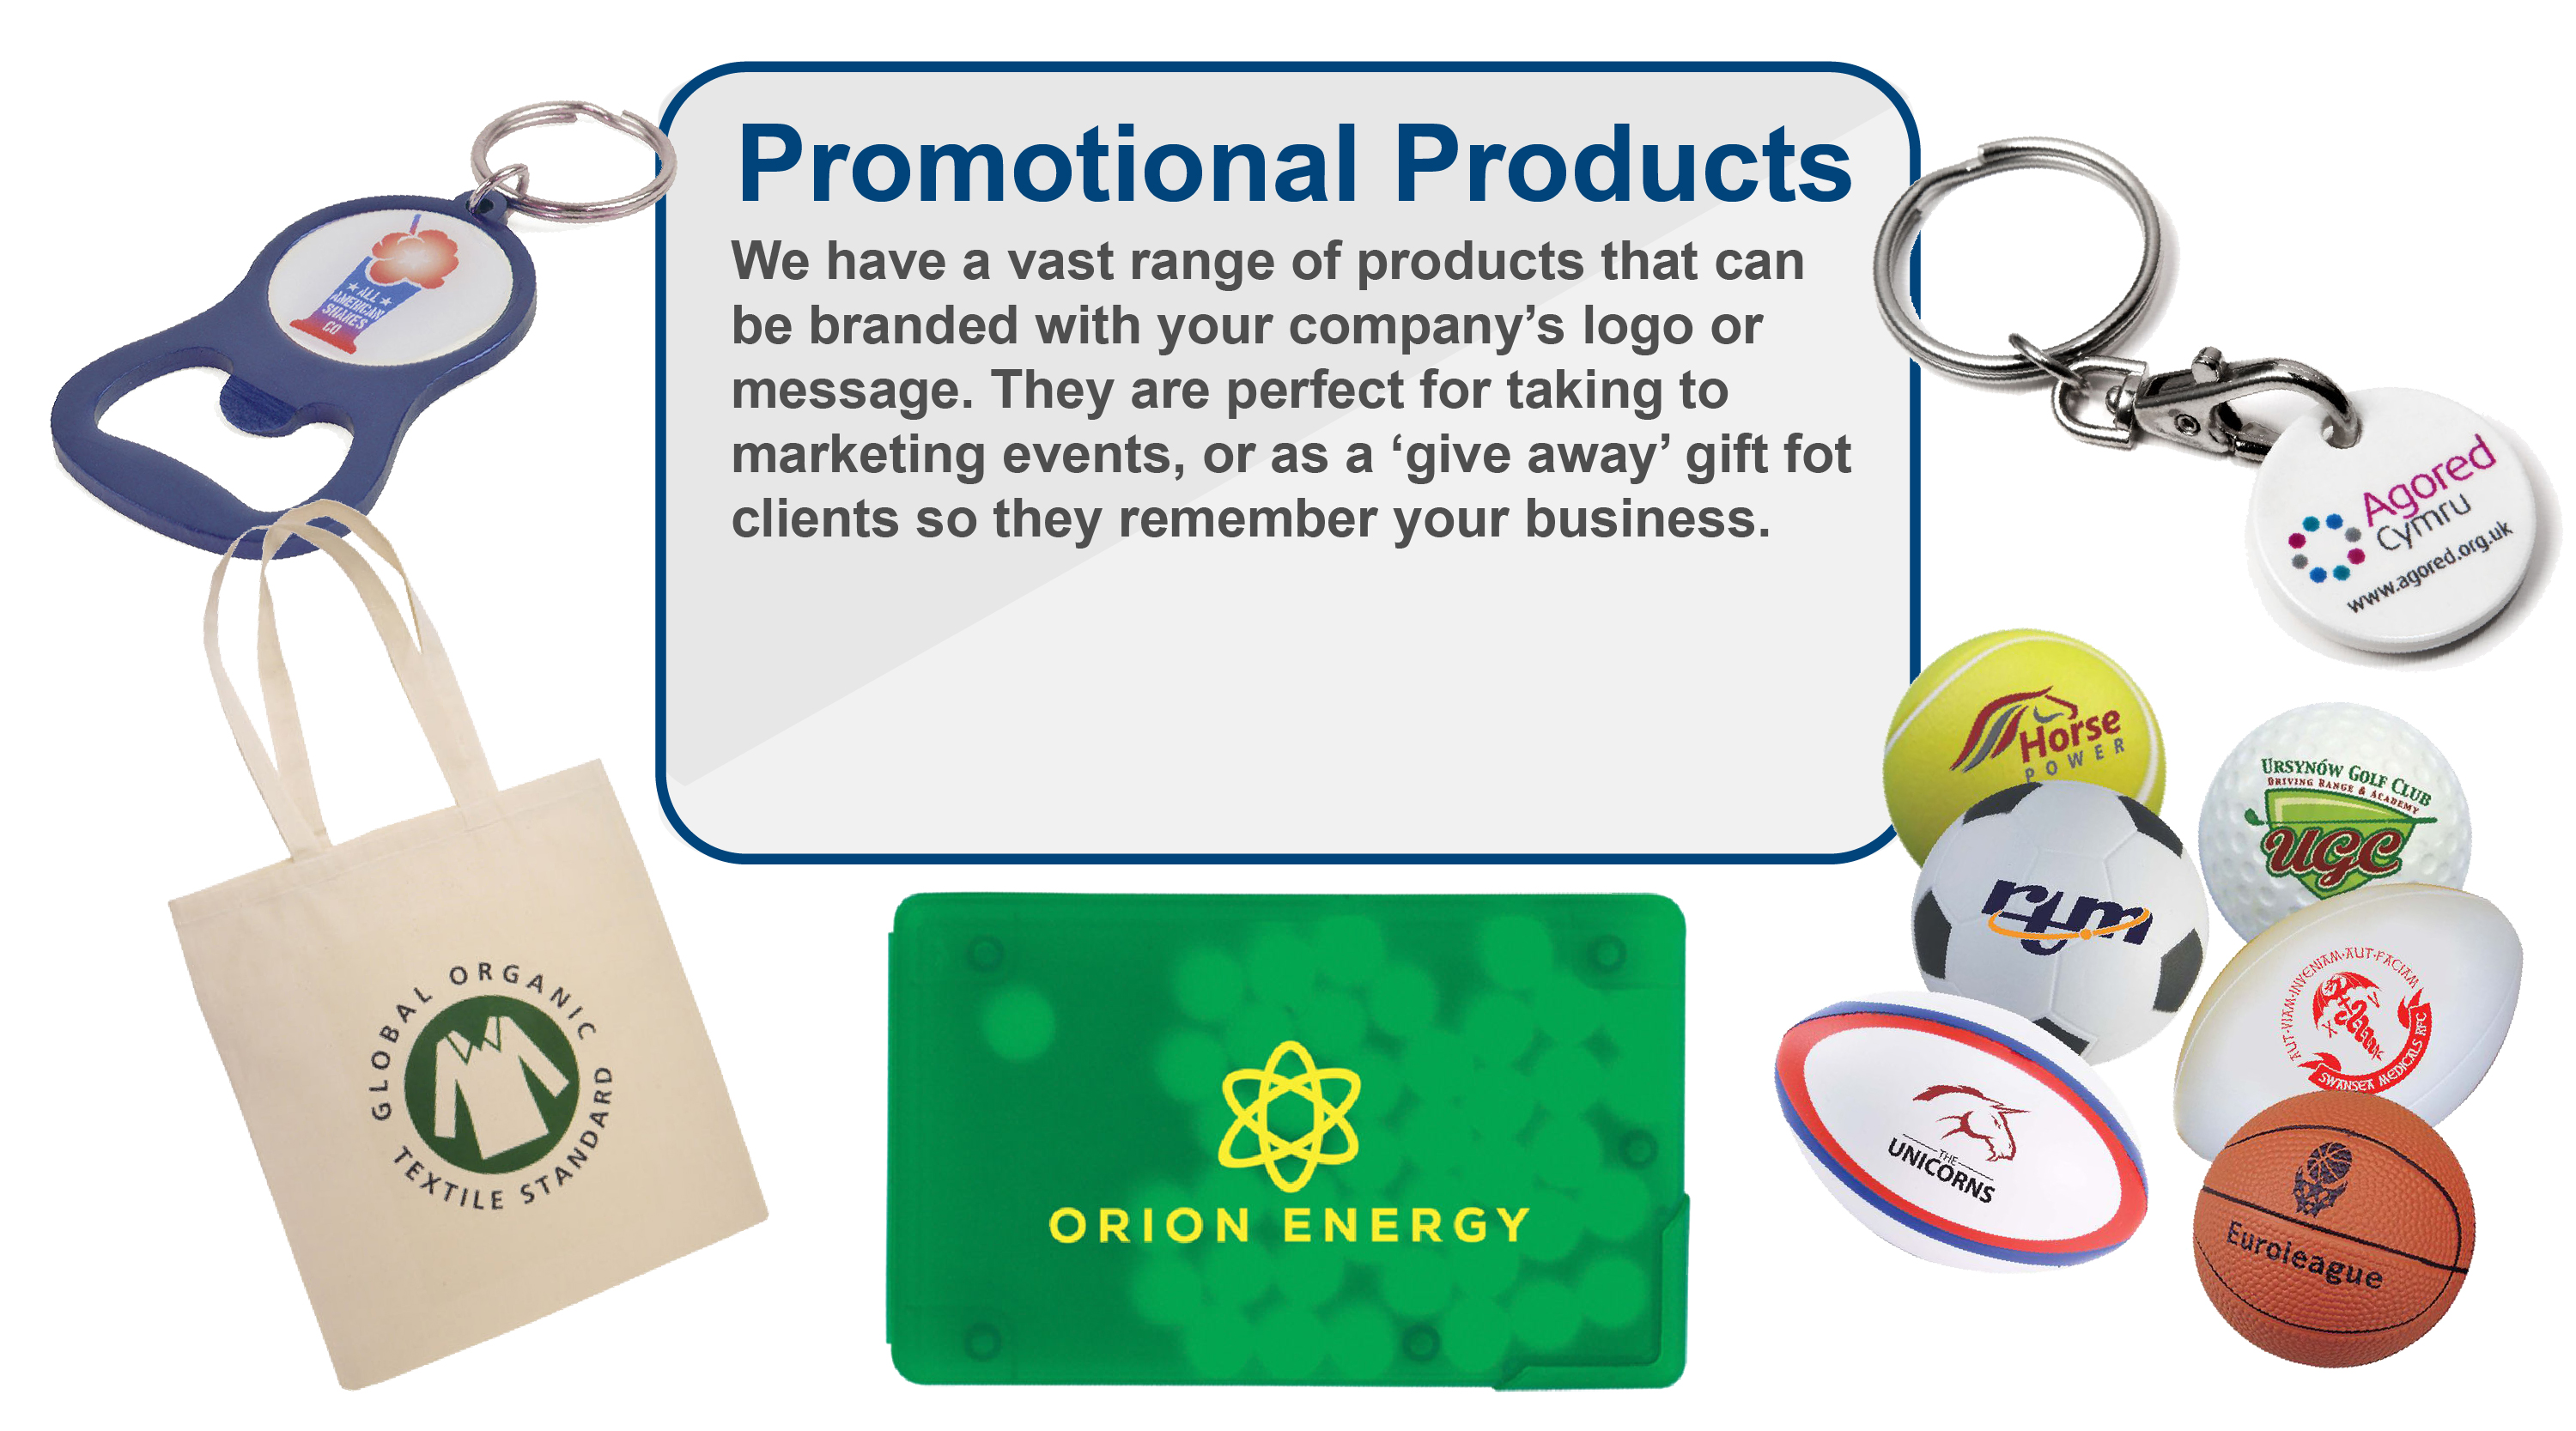 Promotional Products 4